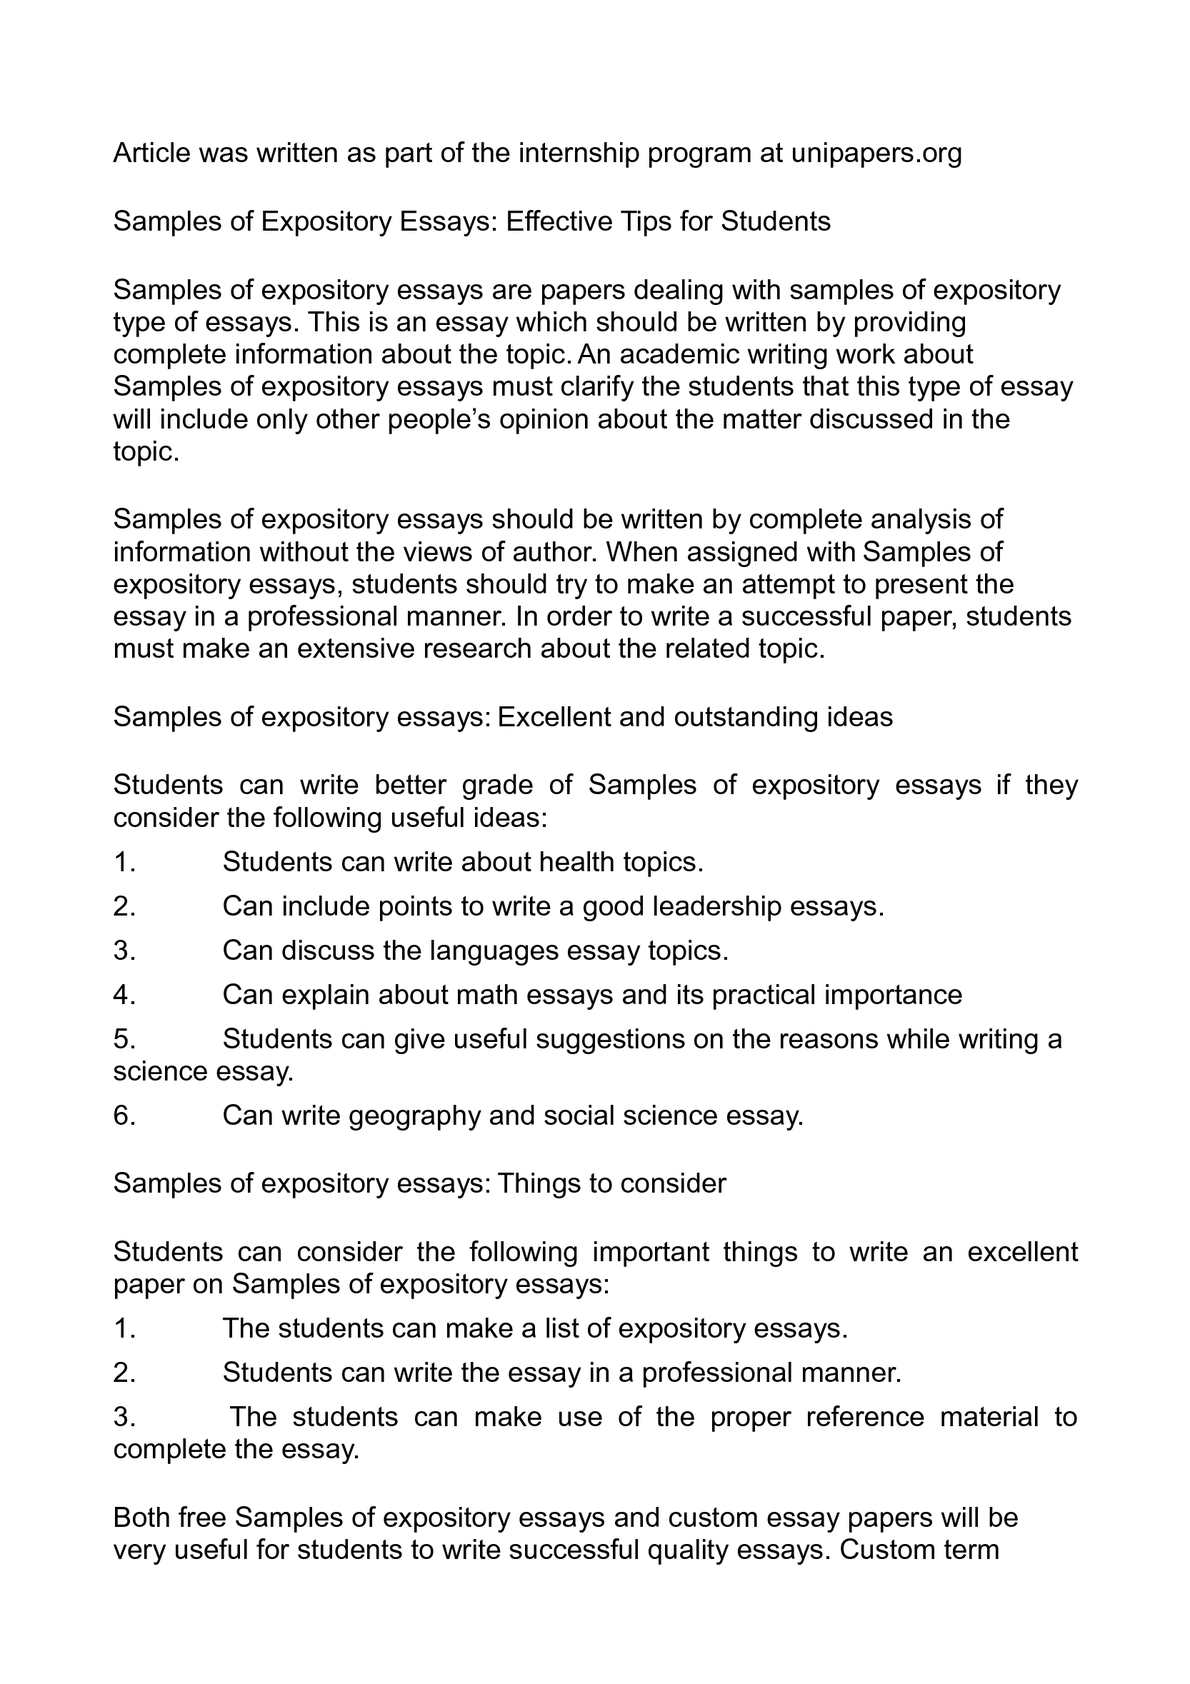 calamo   samples of expository essays effective tips for students